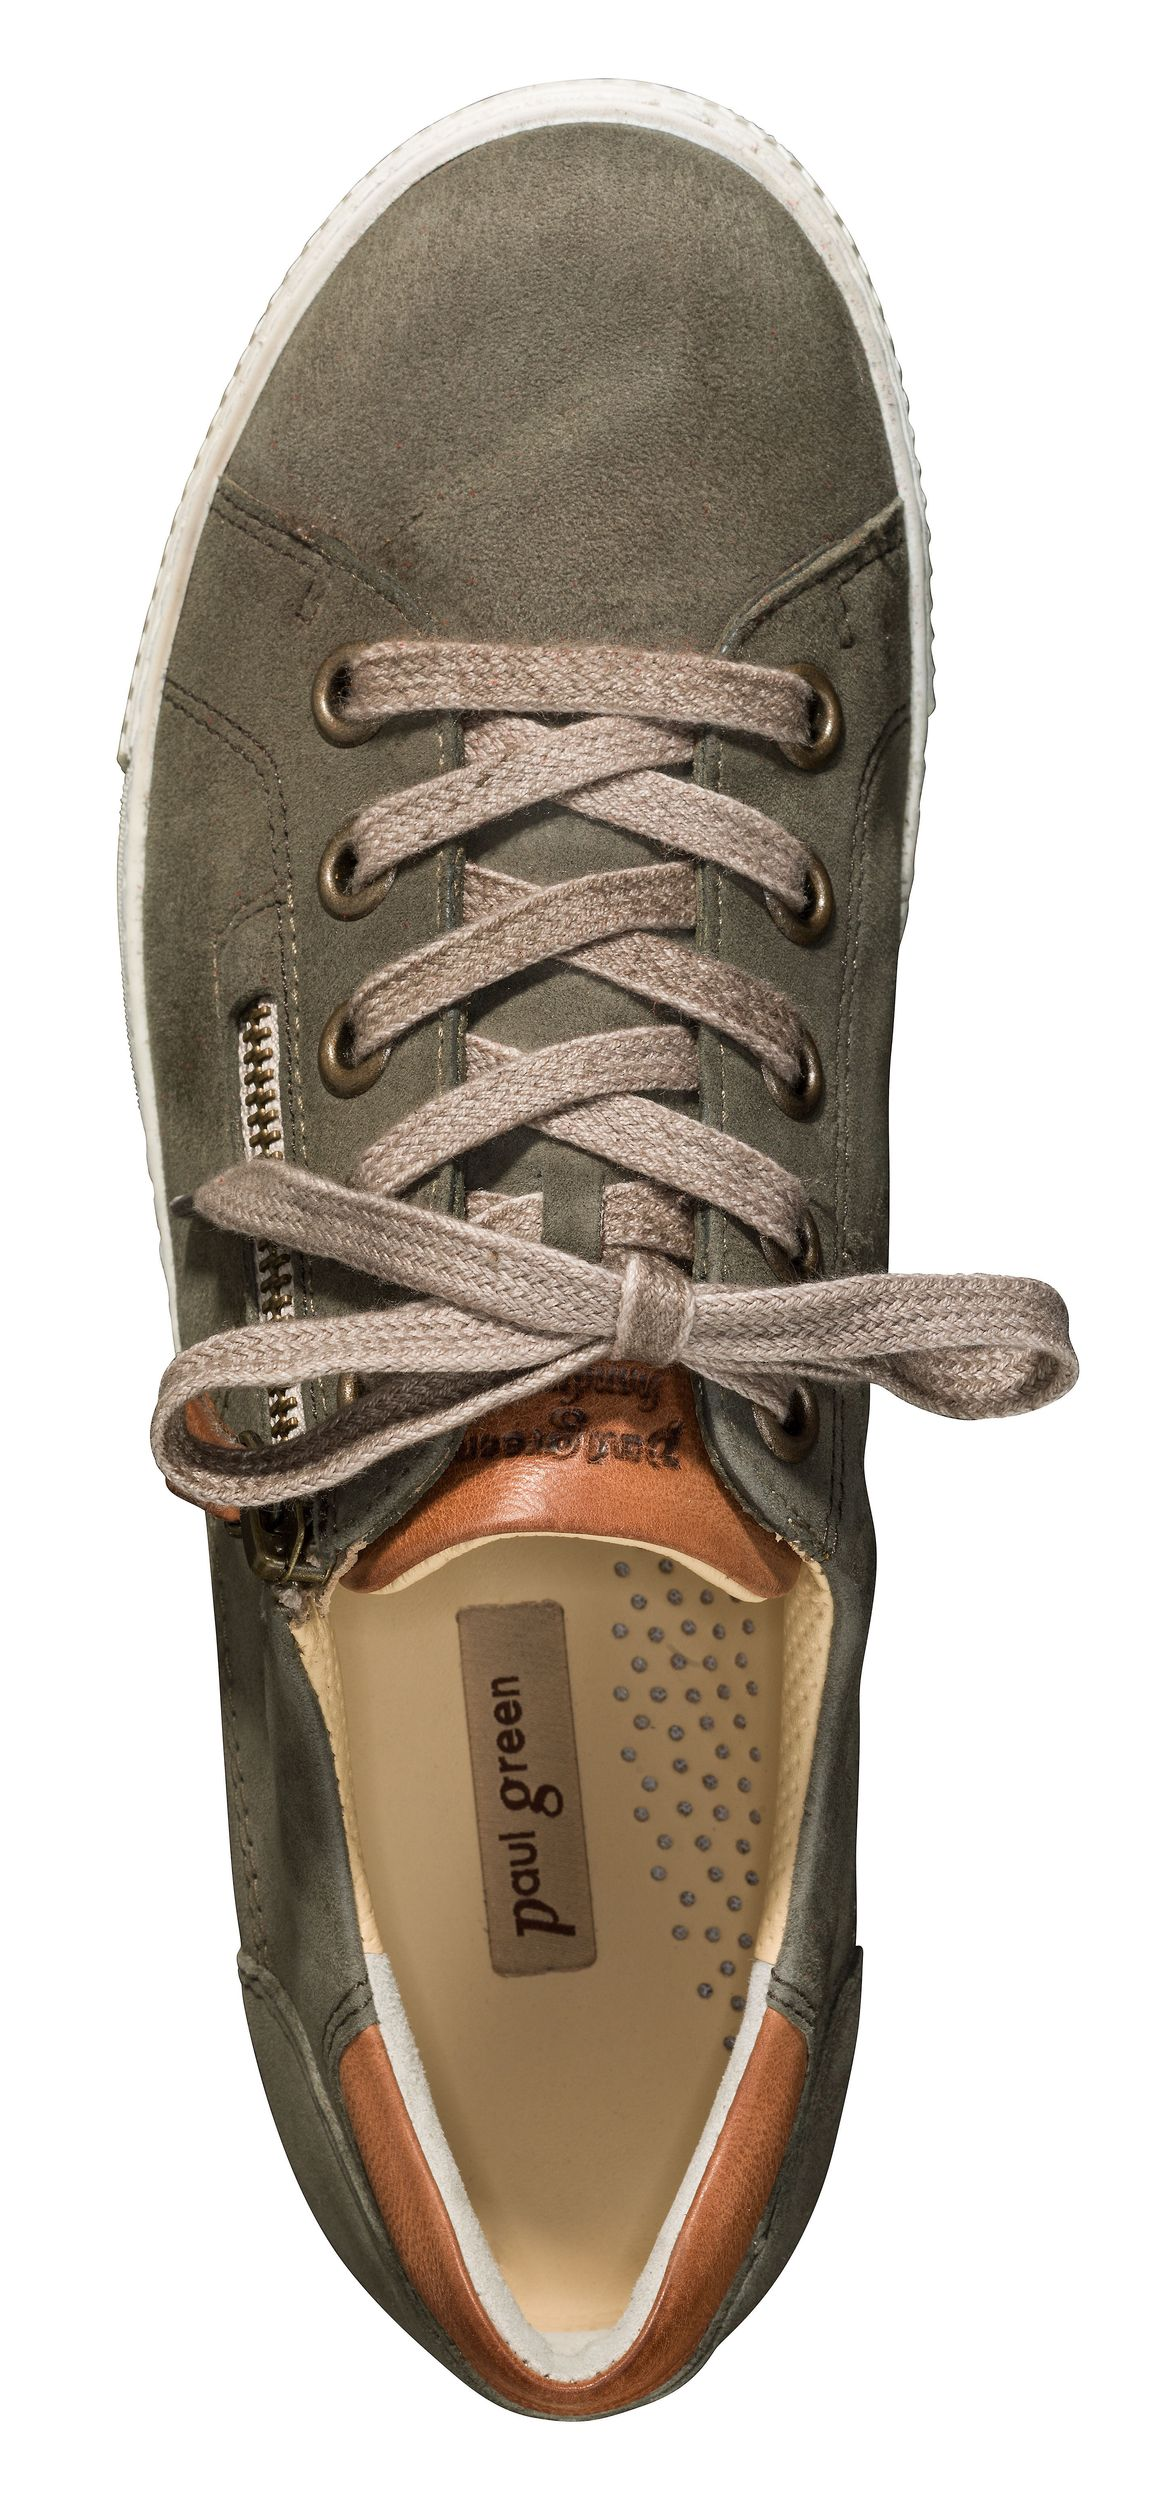 Sneakers in olive with side zipper Paul Green